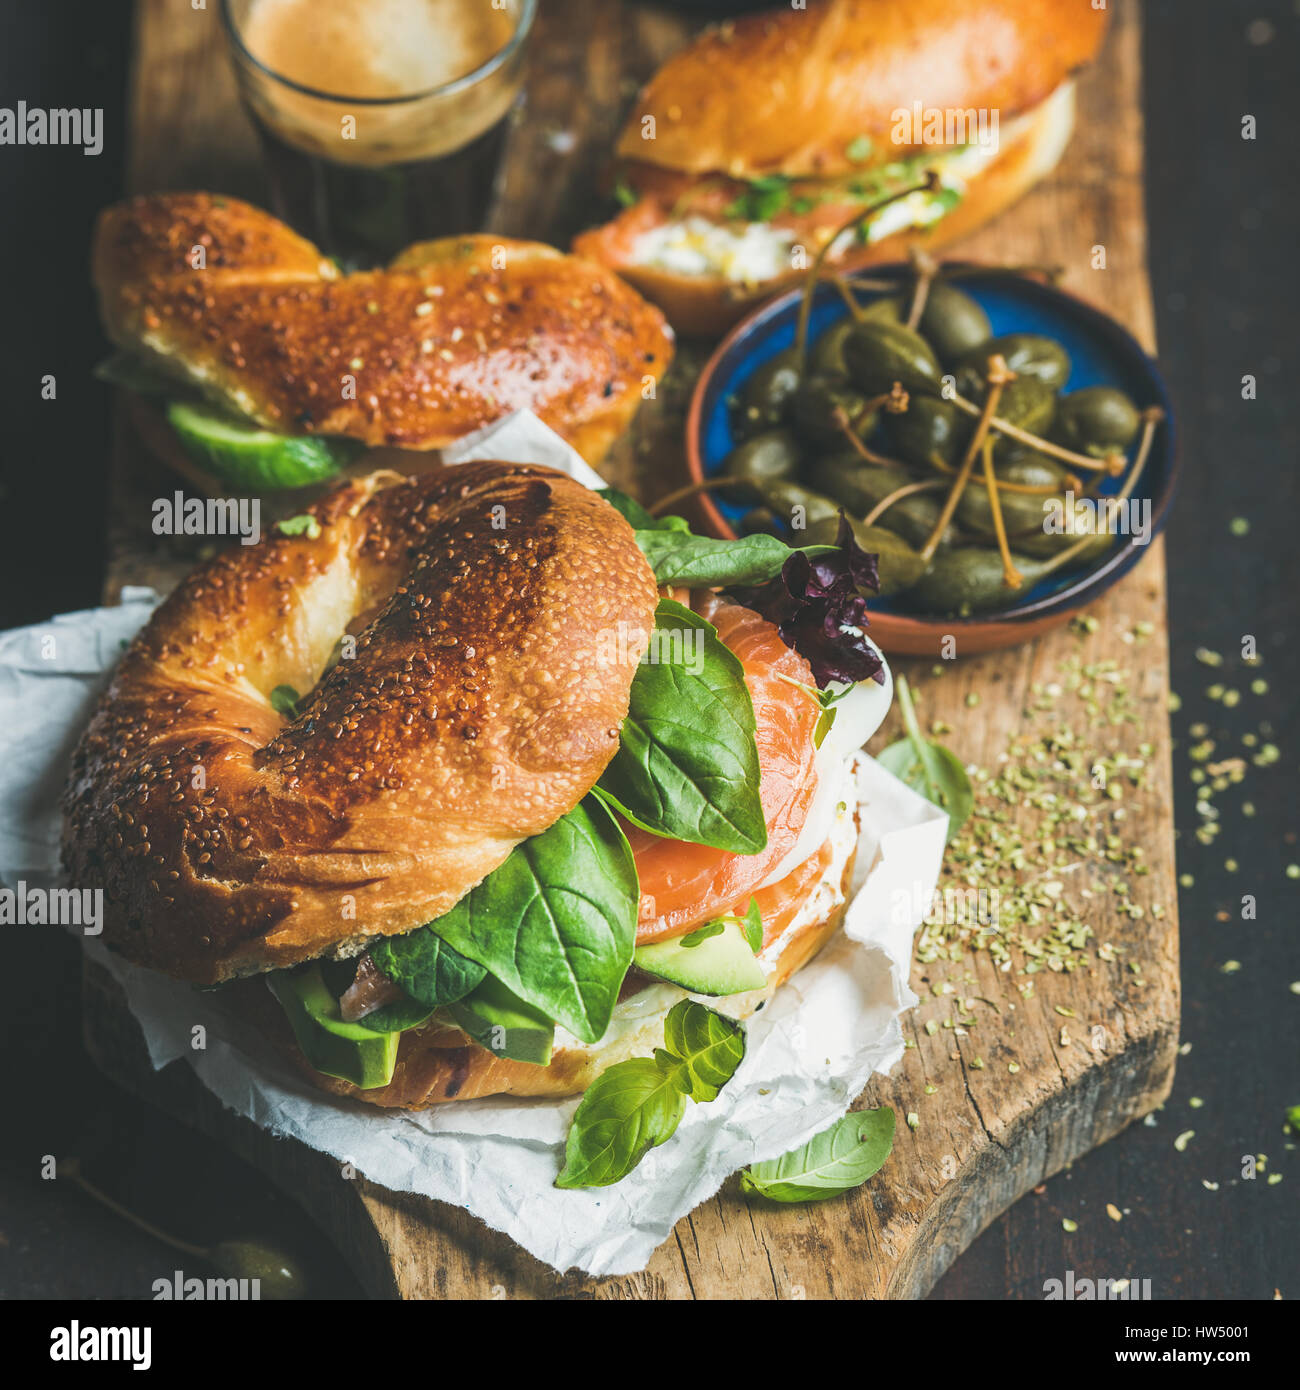 Close-up of bagels, espresso coffee in glass and capers - Stock Image